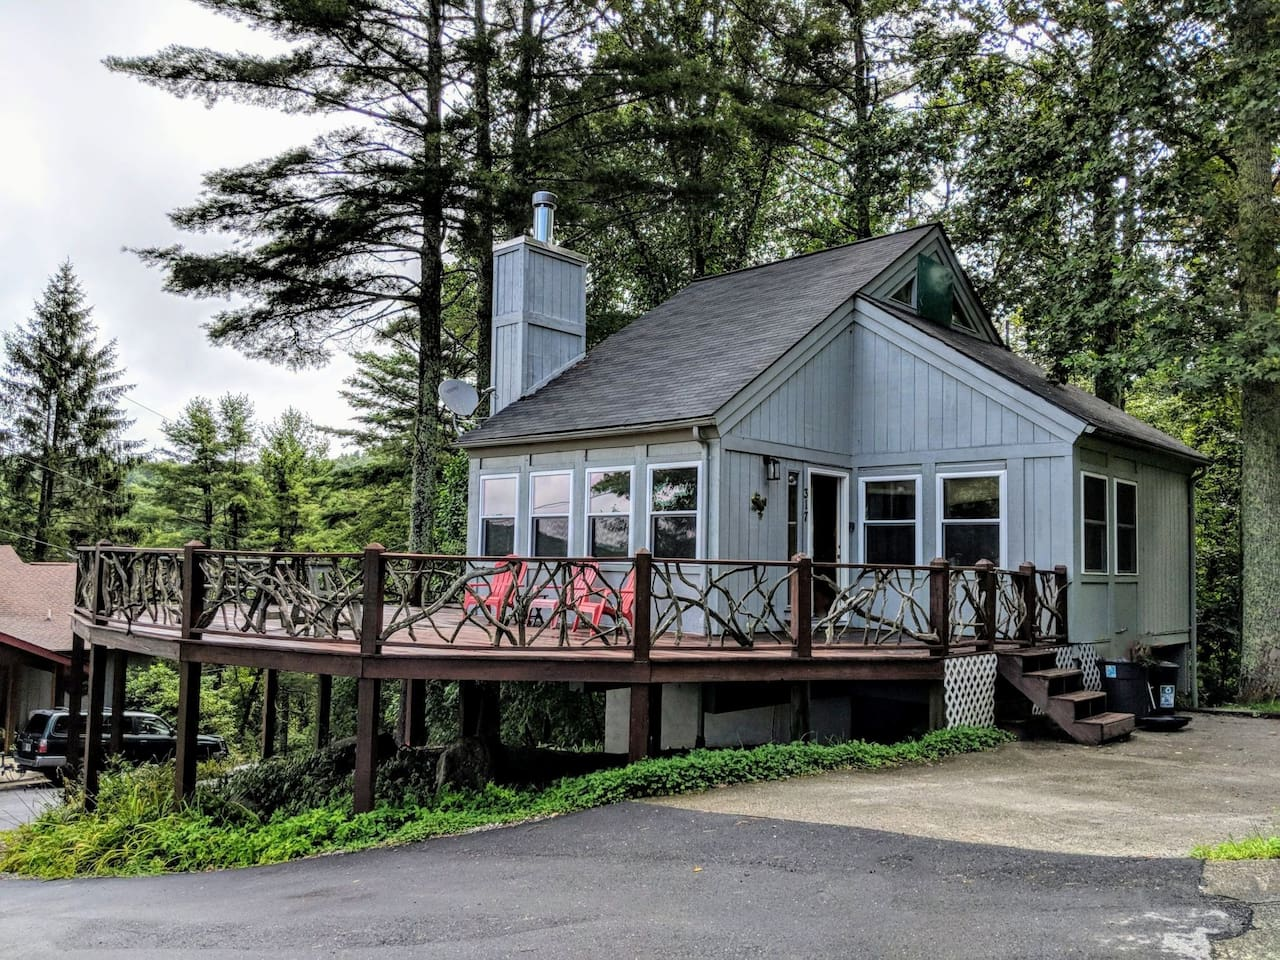 Front of House, lots of character with a driftwood deck railing.